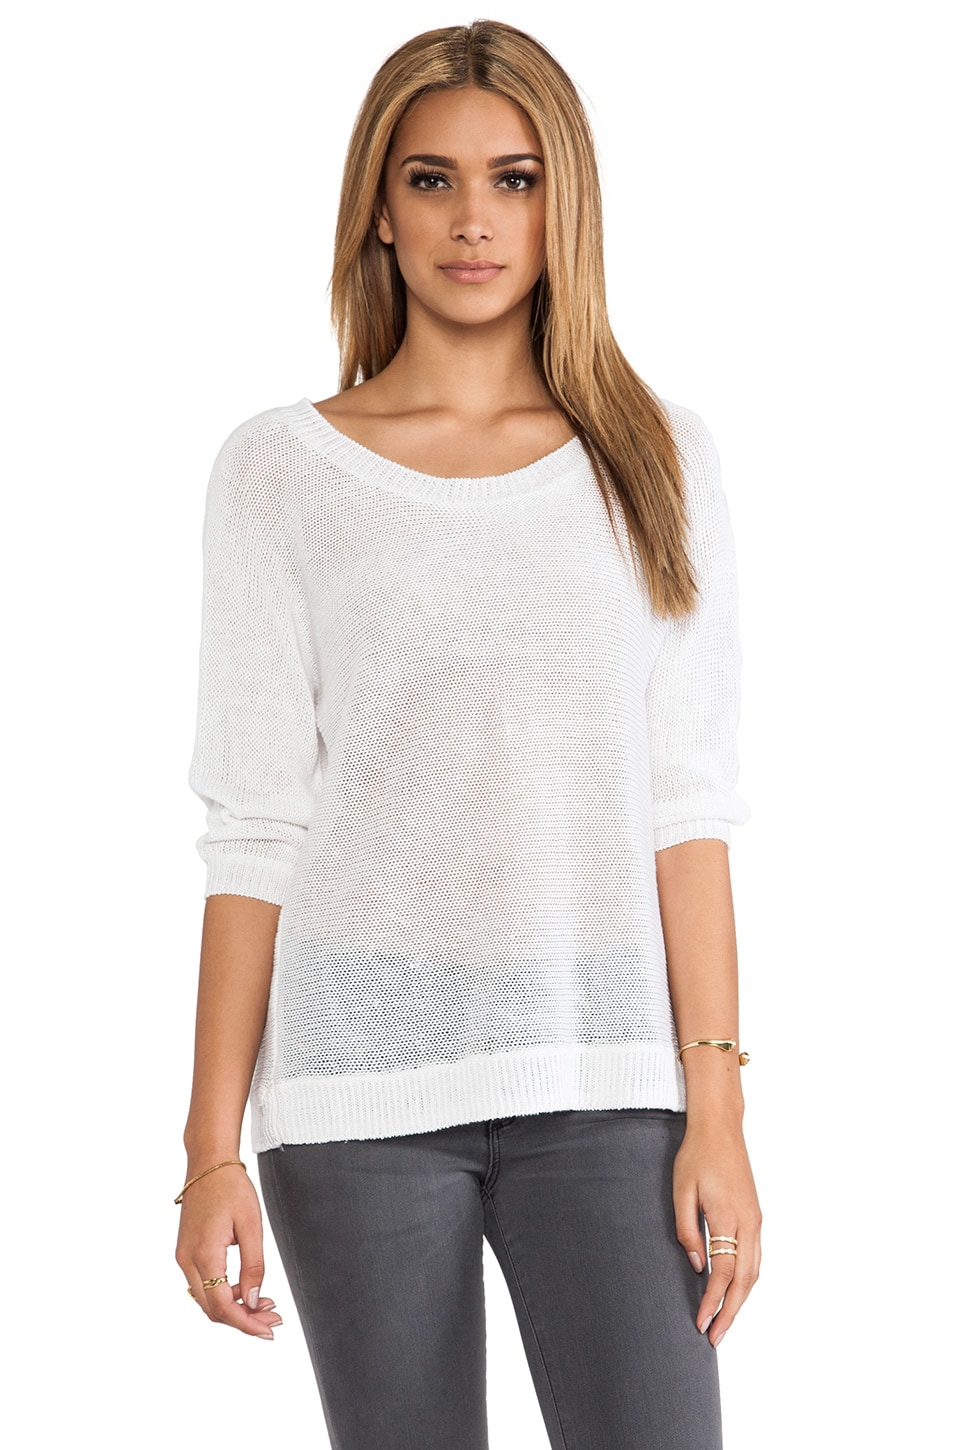 360 Sweater Oasis Sweater in White